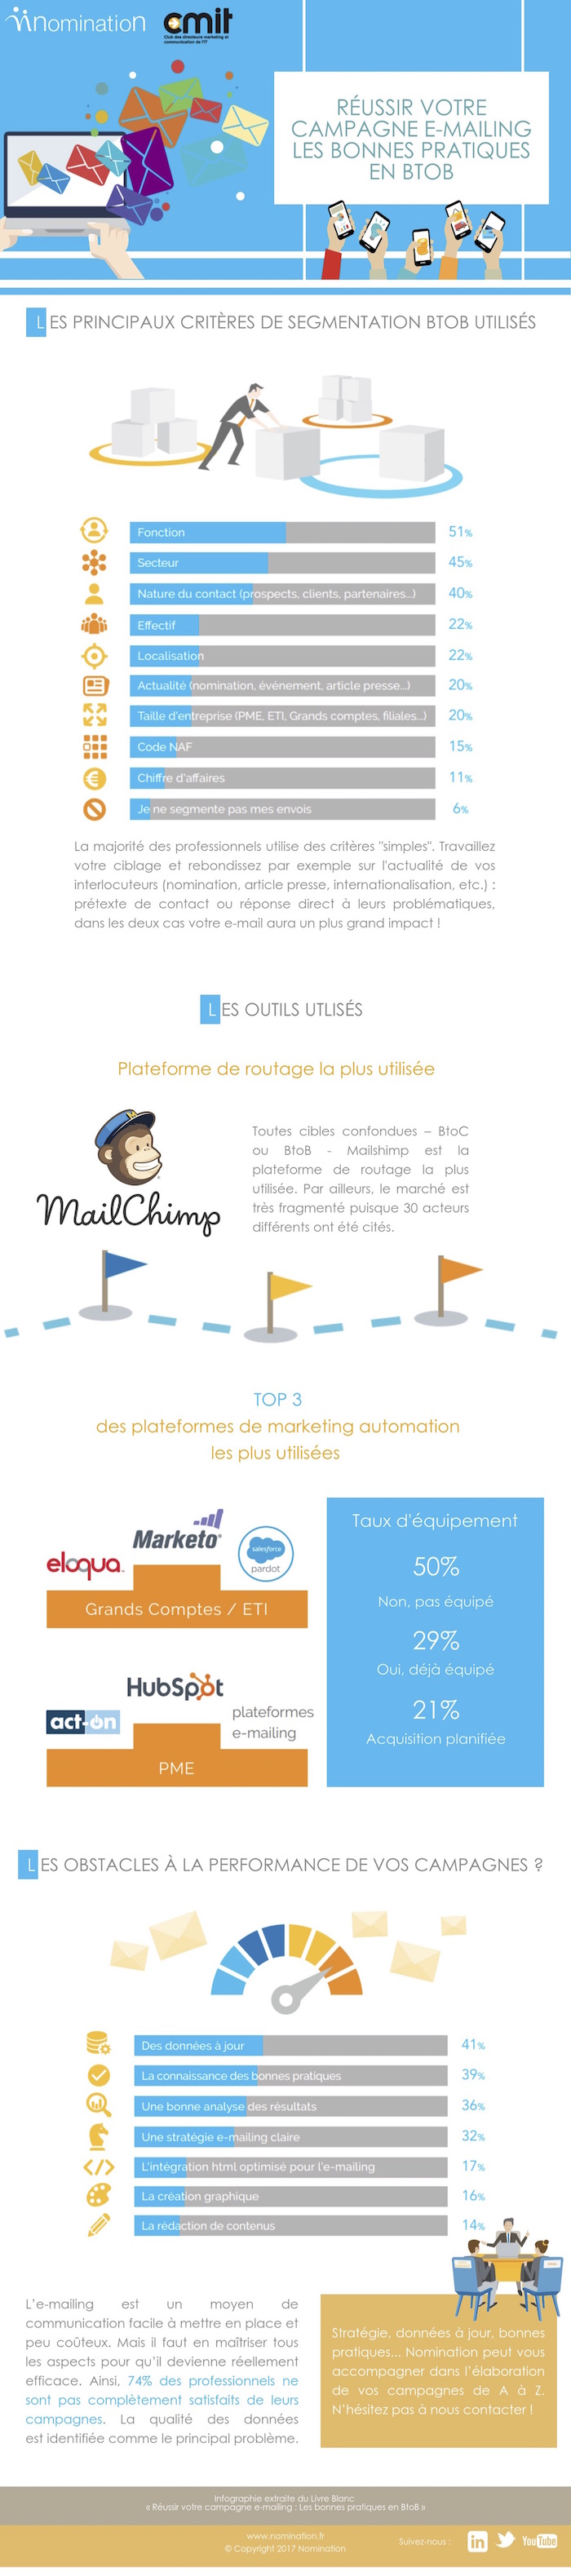 infographie_emailing_2017-CMIT[2]